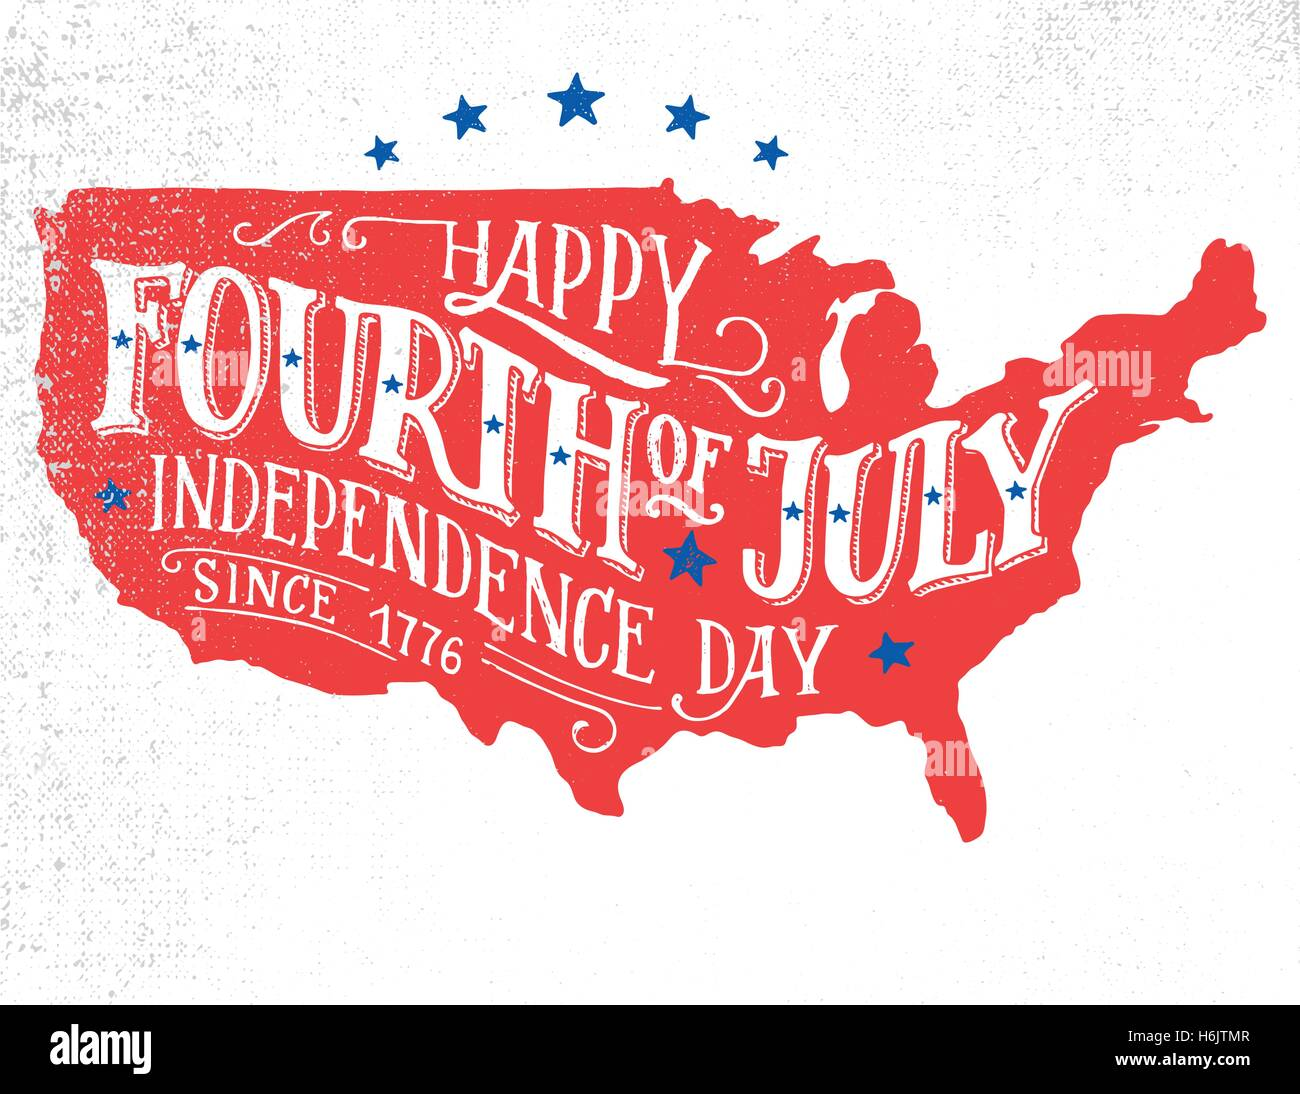 Happy fourth of july independence day of the united states 4th of happy fourth of july independence day of the united states 4th of july happy birthday america hand lettering greeting card o m4hsunfo